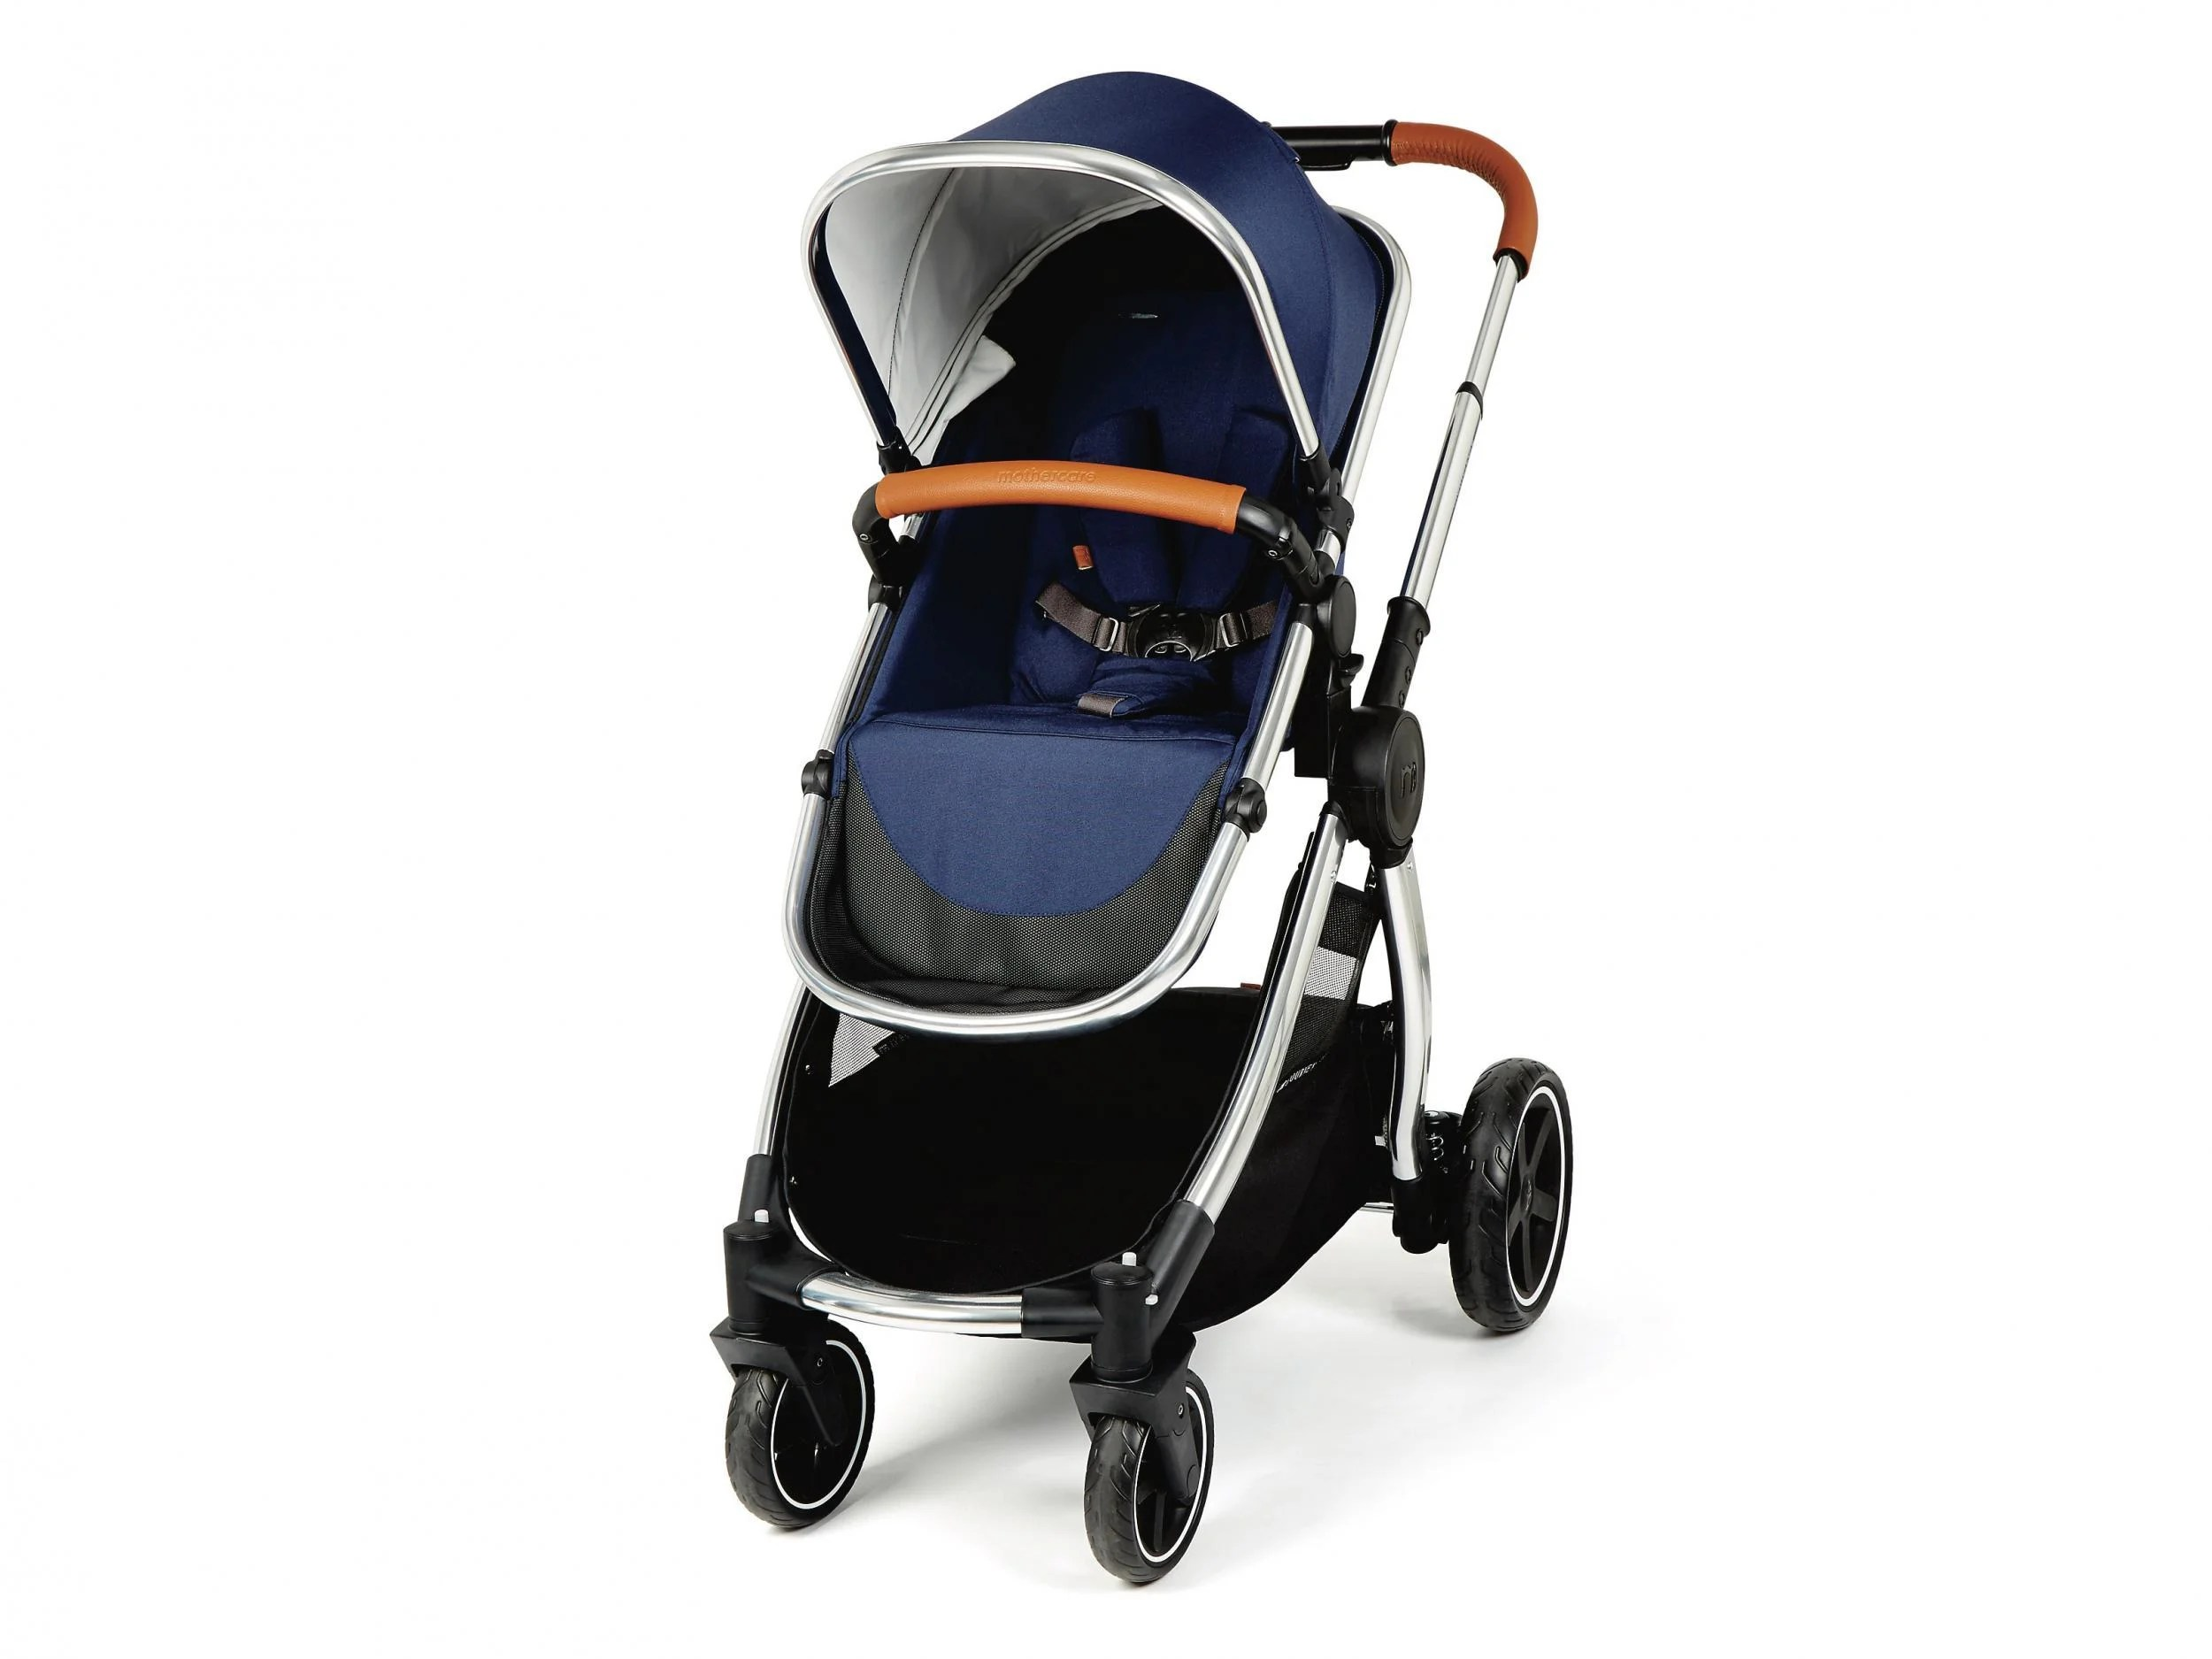 Baby Pram And Car Seat Combo Best Pushchairs Choose From Buggies Prams And Strollers